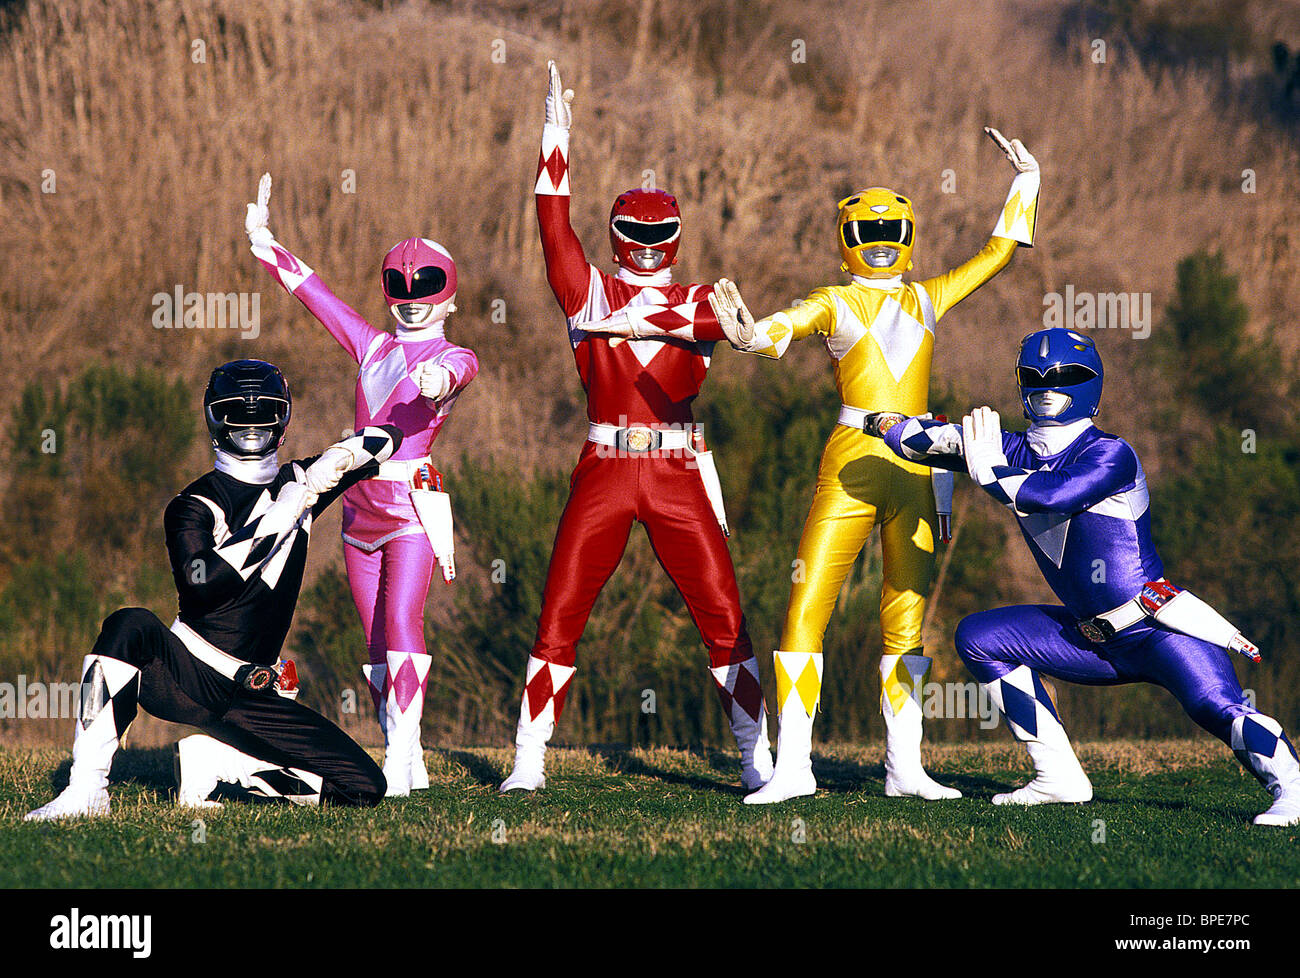 BLACK RANGER, PINK RANGER, RED RANGER, YELLOW RANGER, BLUE RANGER, MIGHTY MORPHIN POWER RANGERS, 1993 Stock Photo